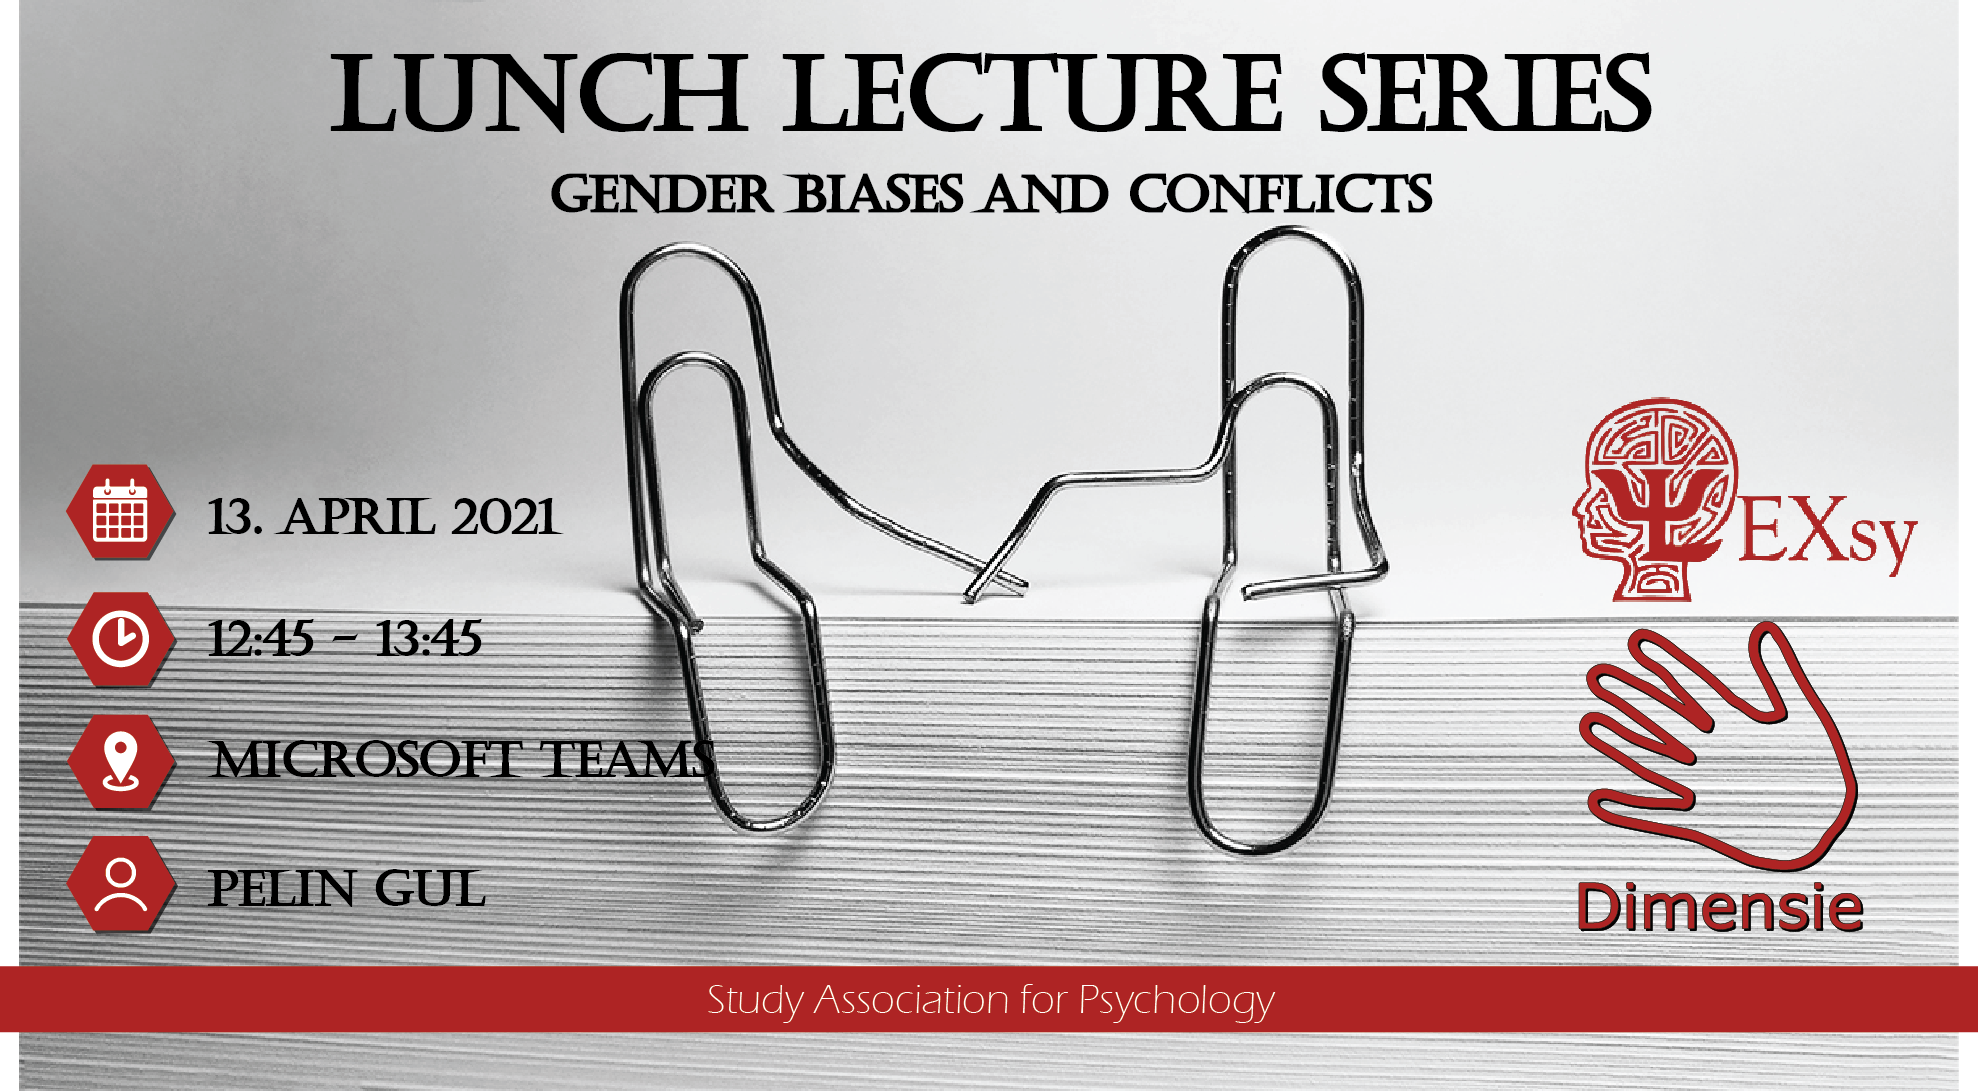 Lunch Lecture Series - Gender biases and conflicts